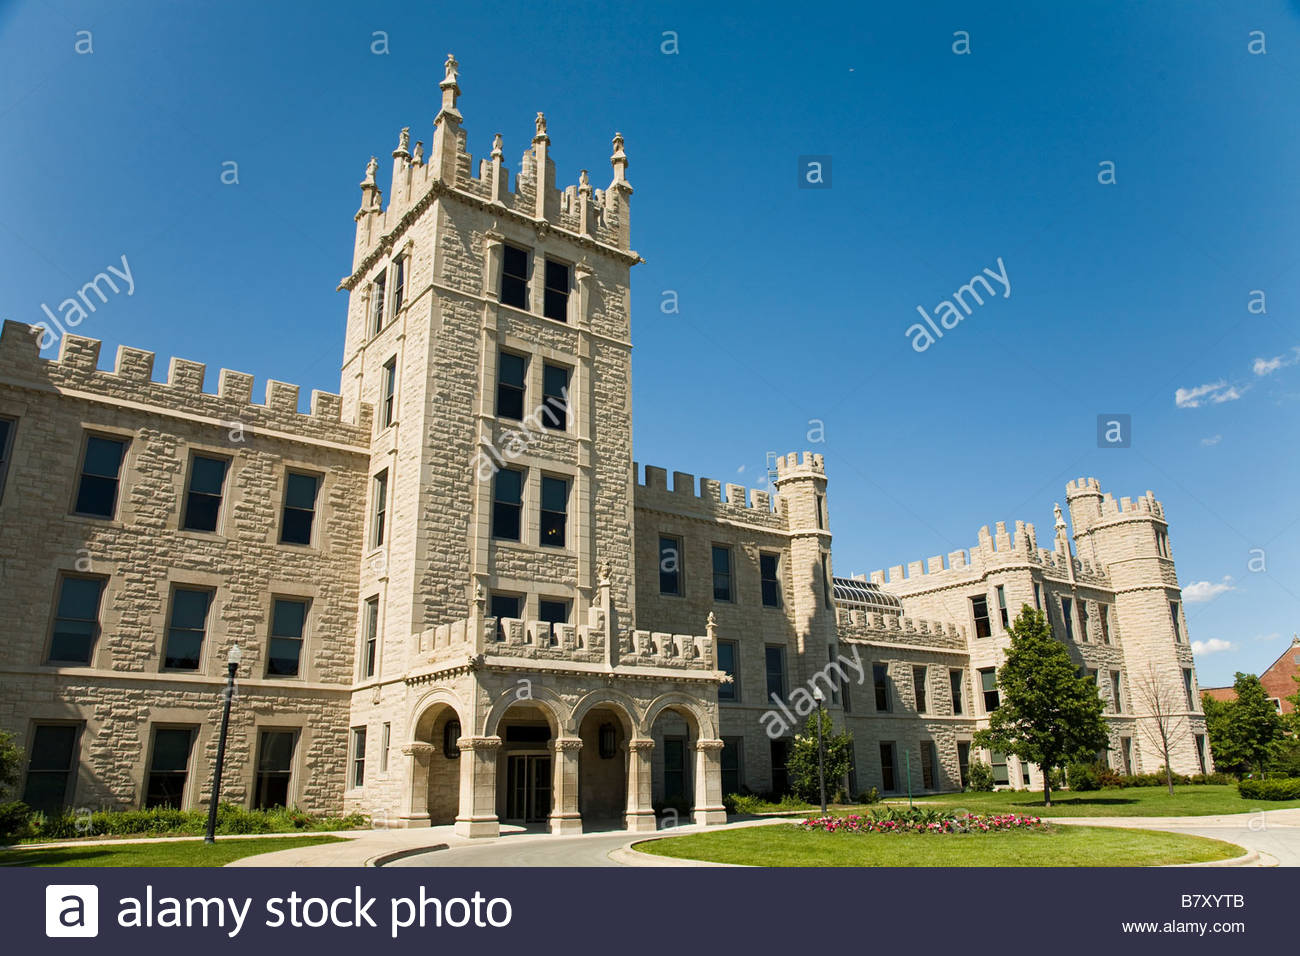 ILLINOIS DeKalb Altgeld Hall on campus of Northern Illinois University castle  like design